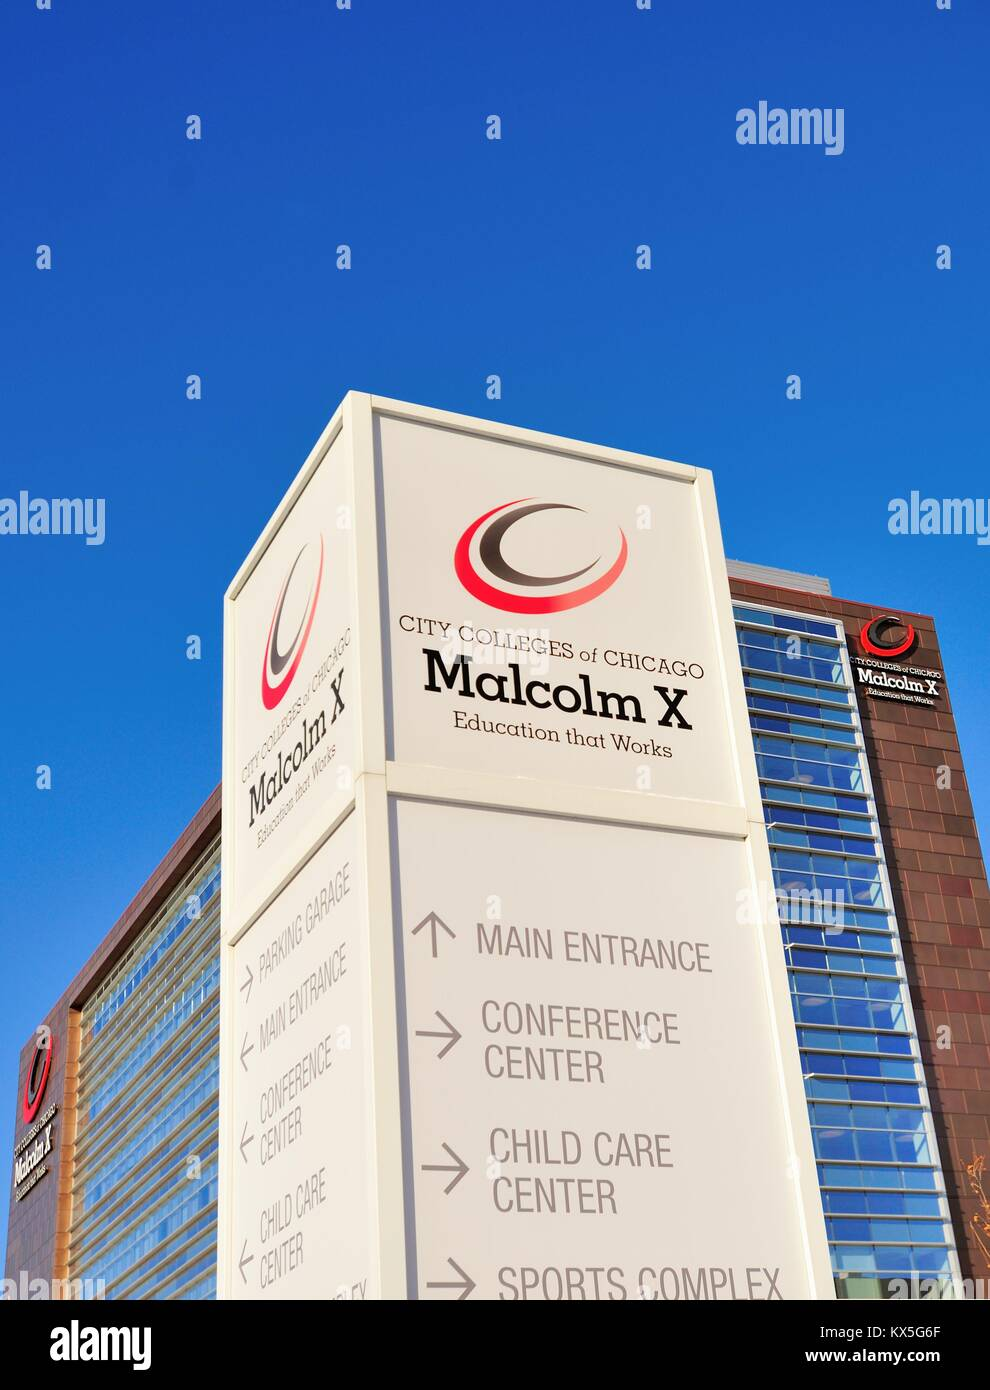 Malcolm X College, one of the City Colleges of Chicago, is a two-year college located west of downtown and the city's - Stock Image